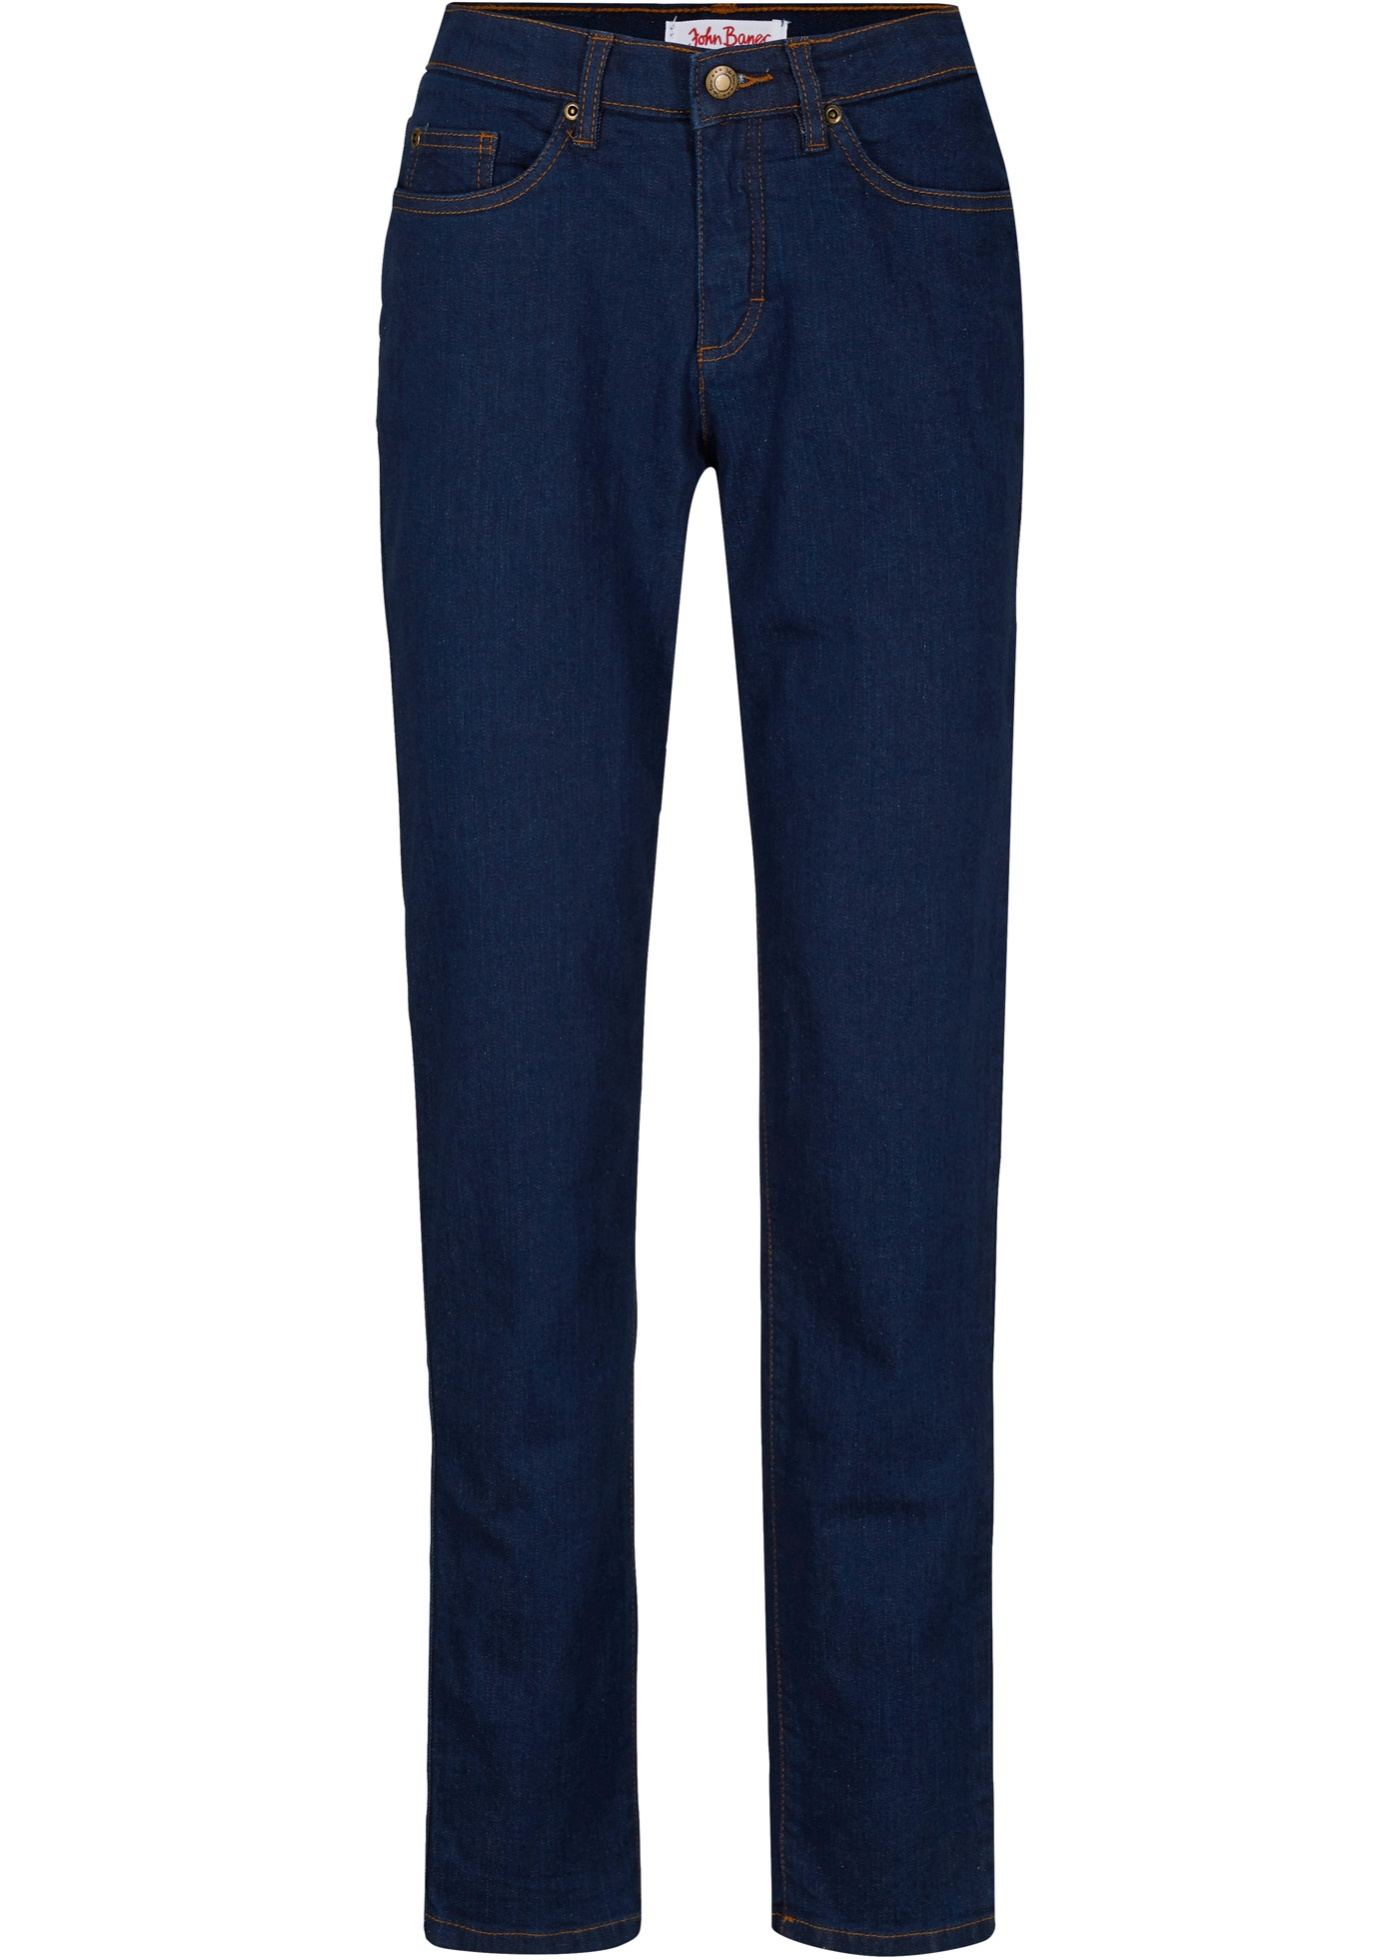 Bestseller-Stretch-Jeans, Classic